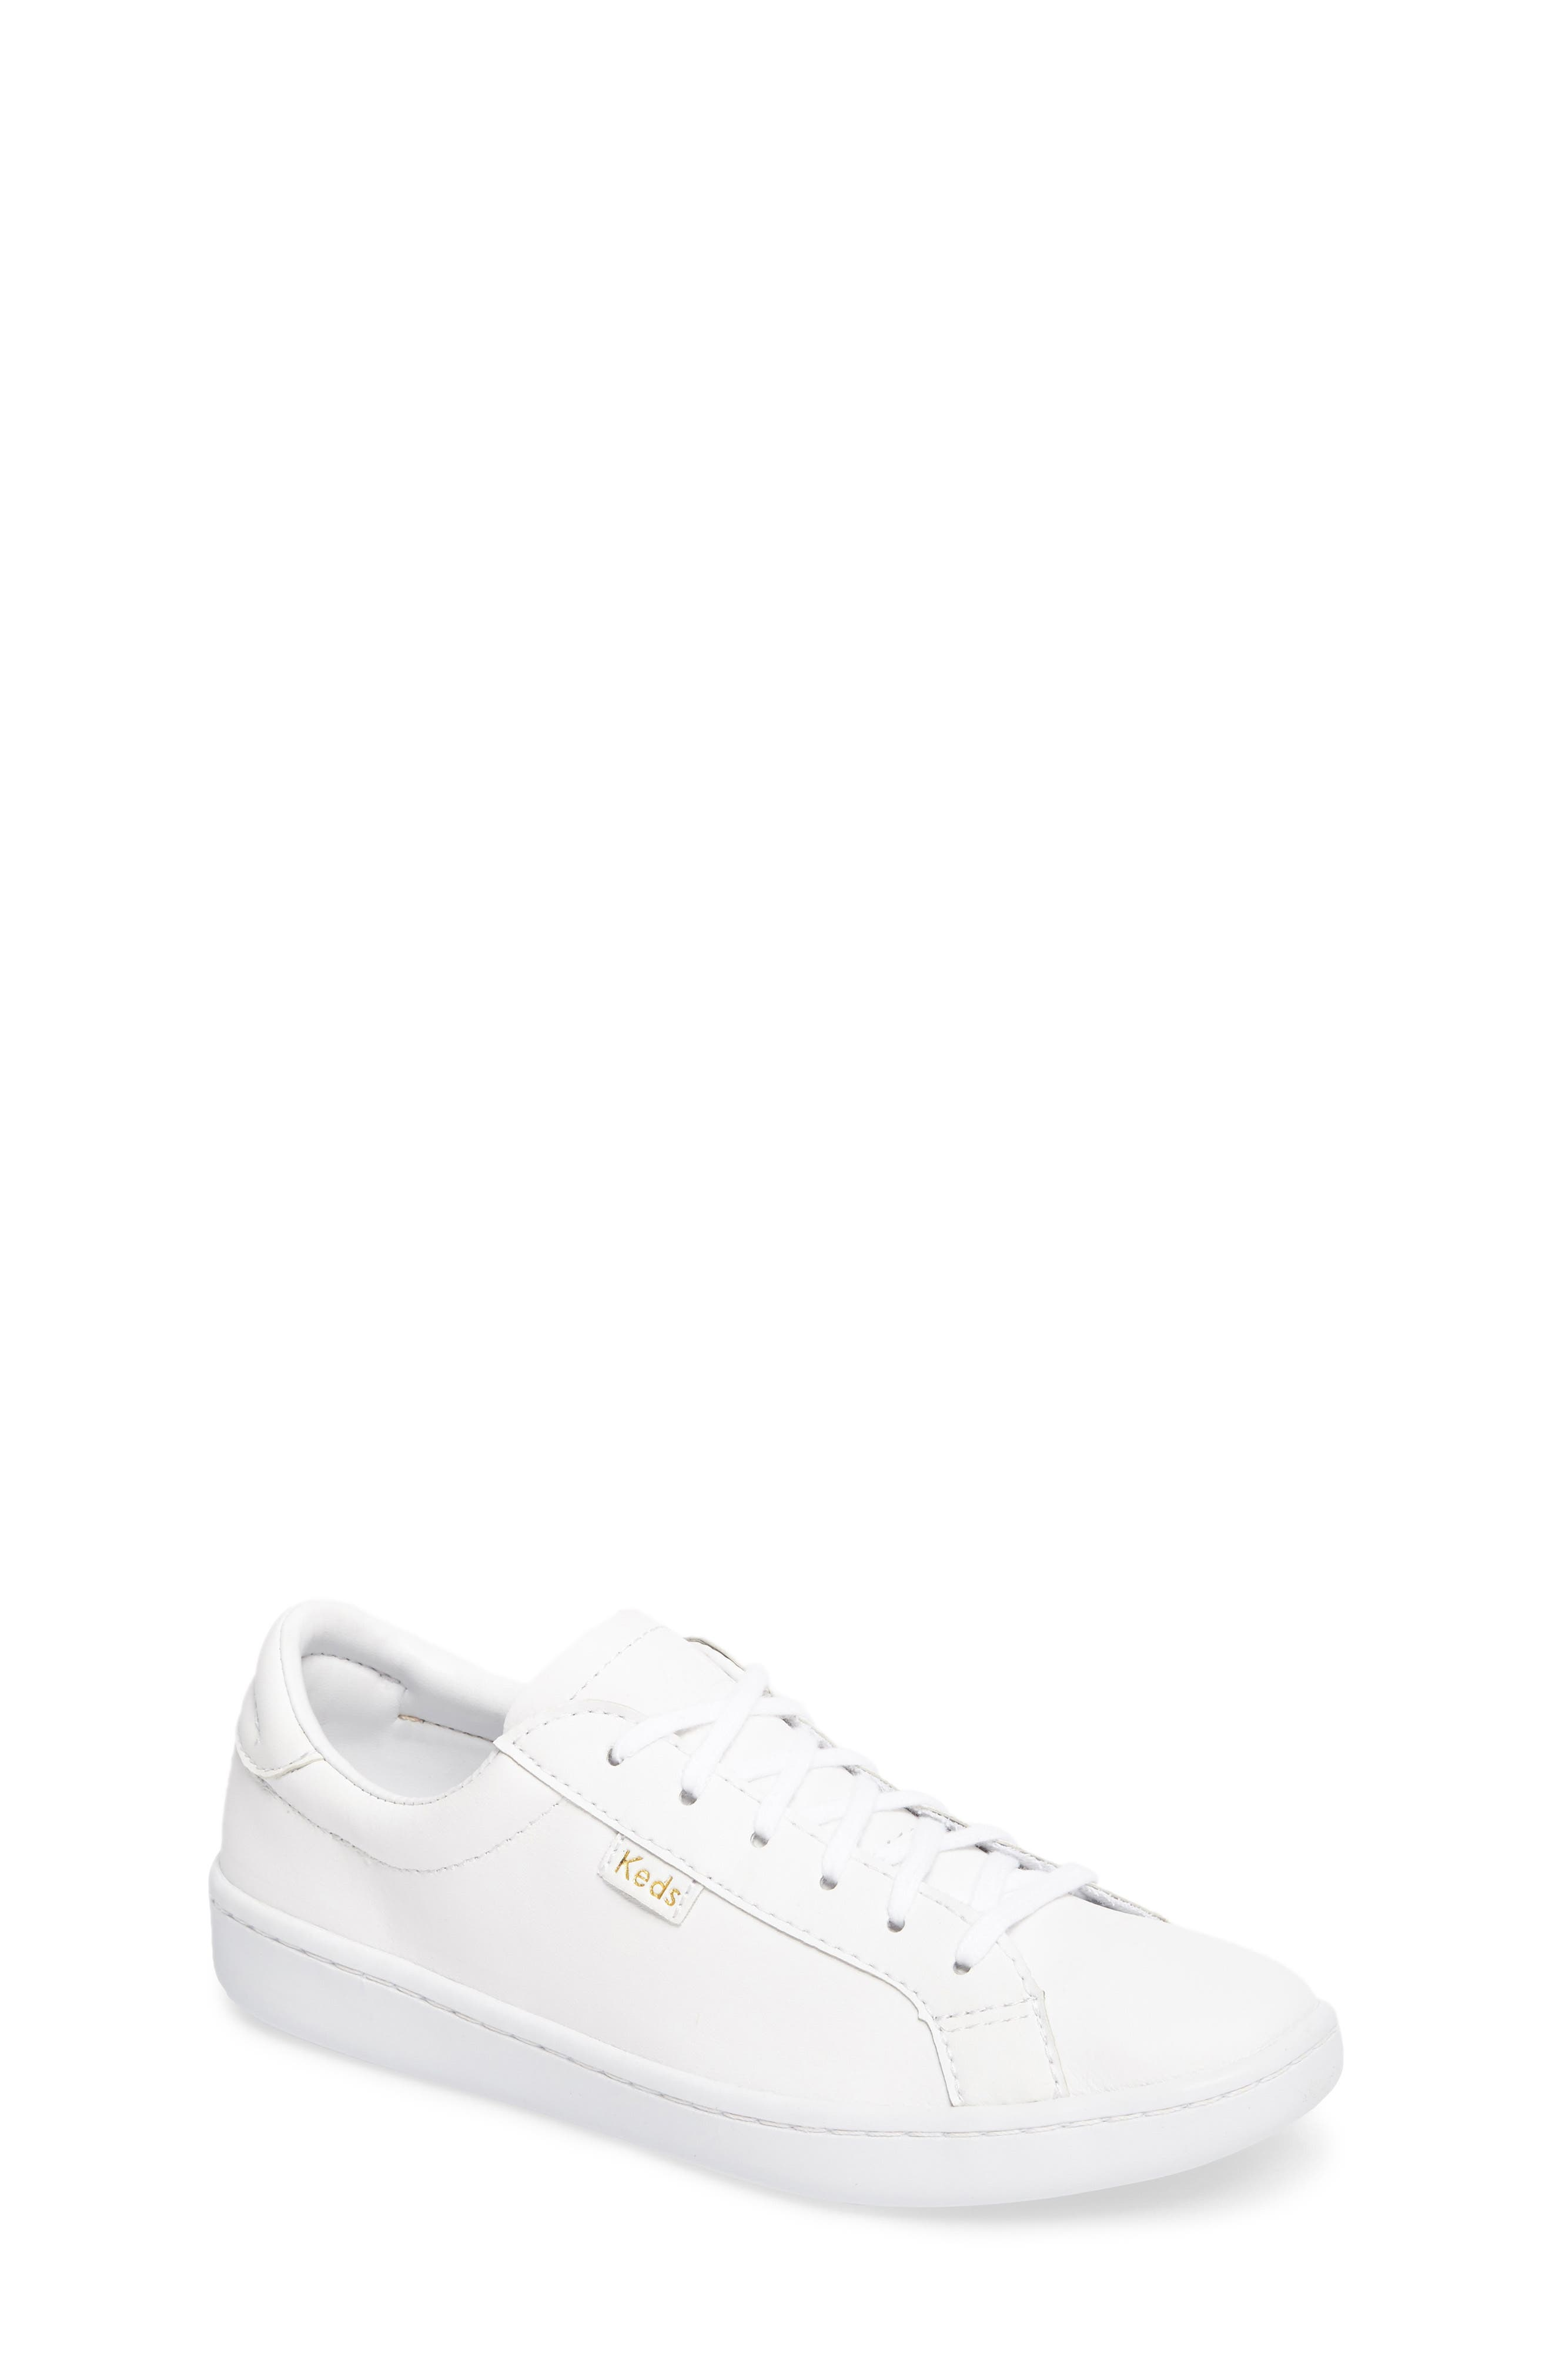 Ace Low Top Sneaker,                         Main,                         color, 100